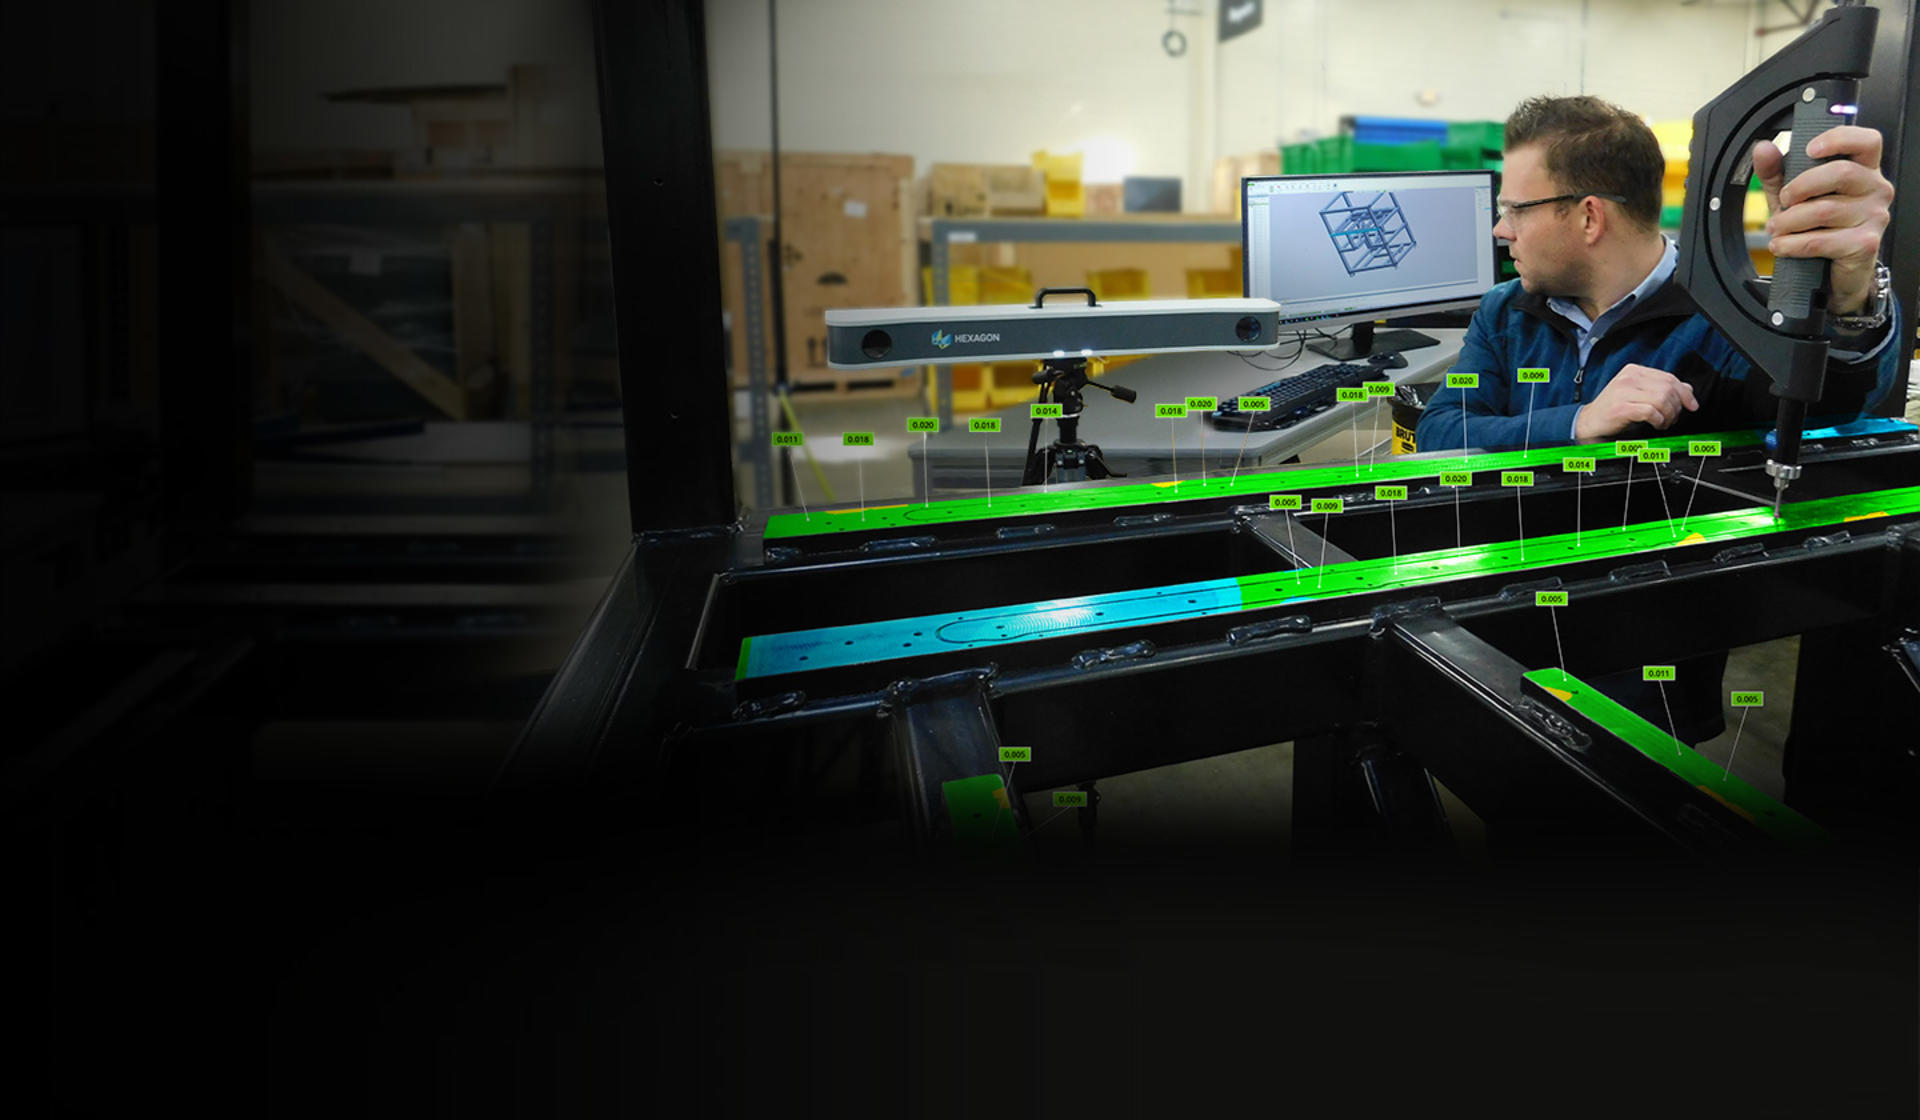 3D Systems program manager Bryan Rough inspects a ProX SLS 6100 3D printer frame using the AICON MoveInspect XR8 optical CMM and Geomagic Control X software.